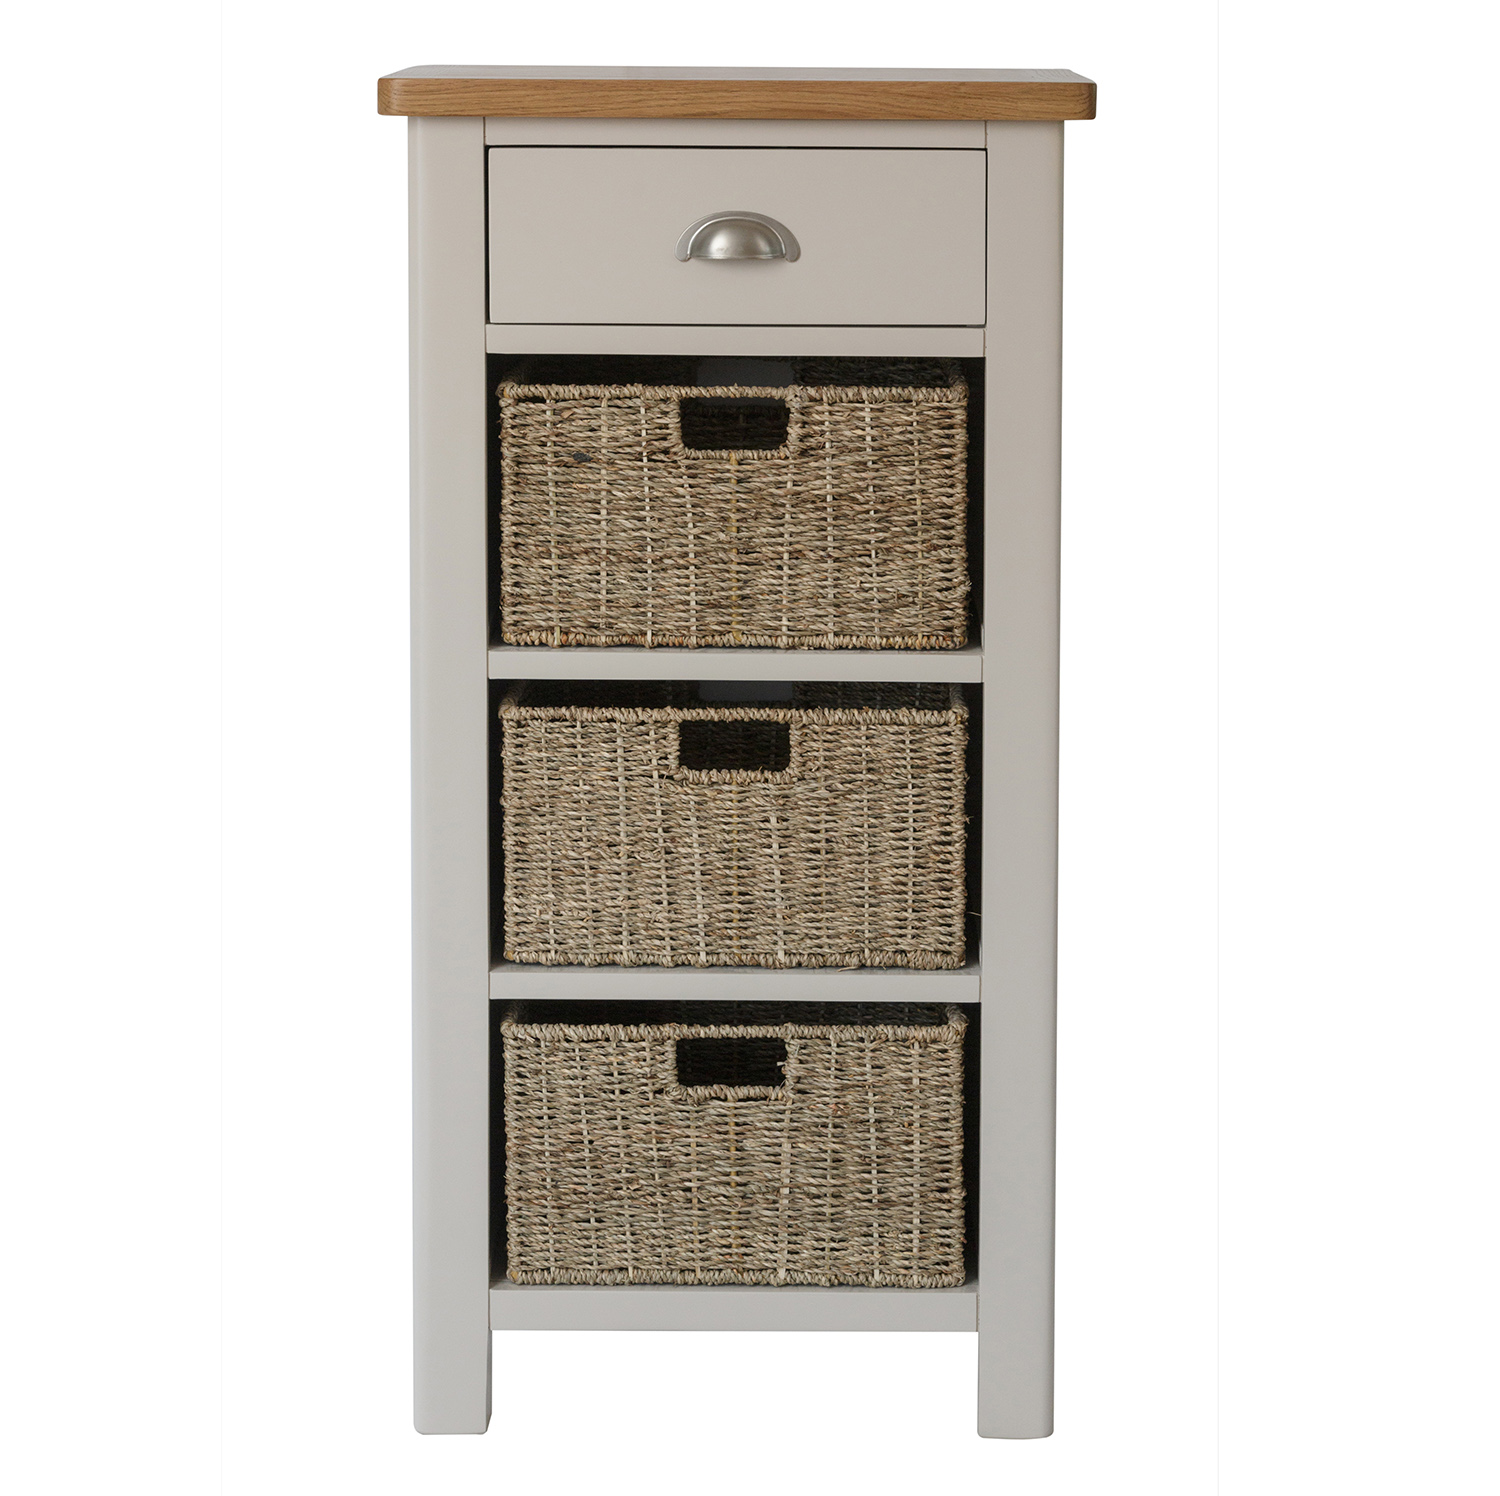 Chiltern Dove 1 Drawer 3 Basket Unit